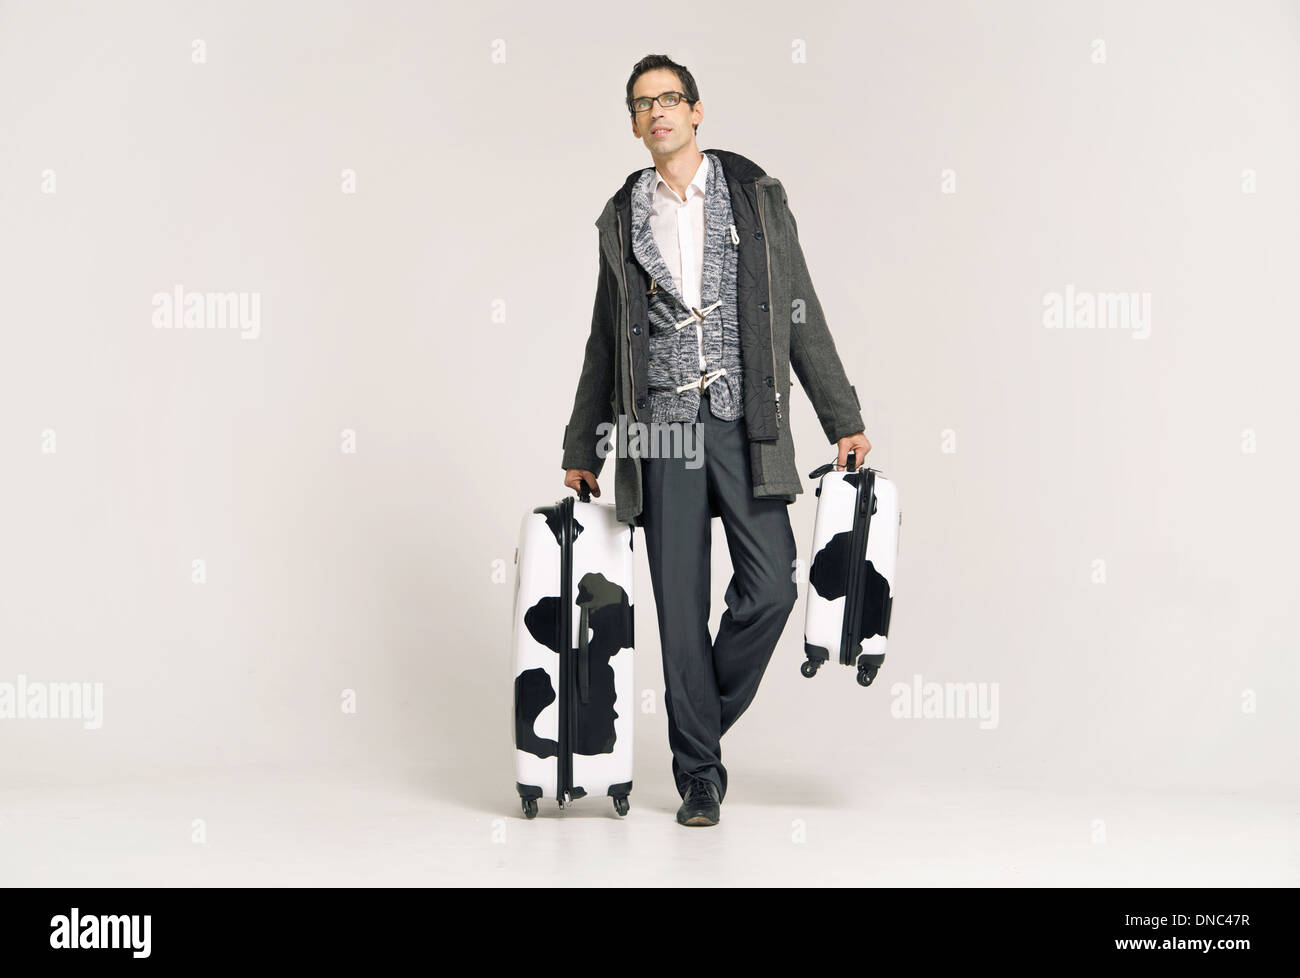 Businessman with two fancy suitcases - Stock Image